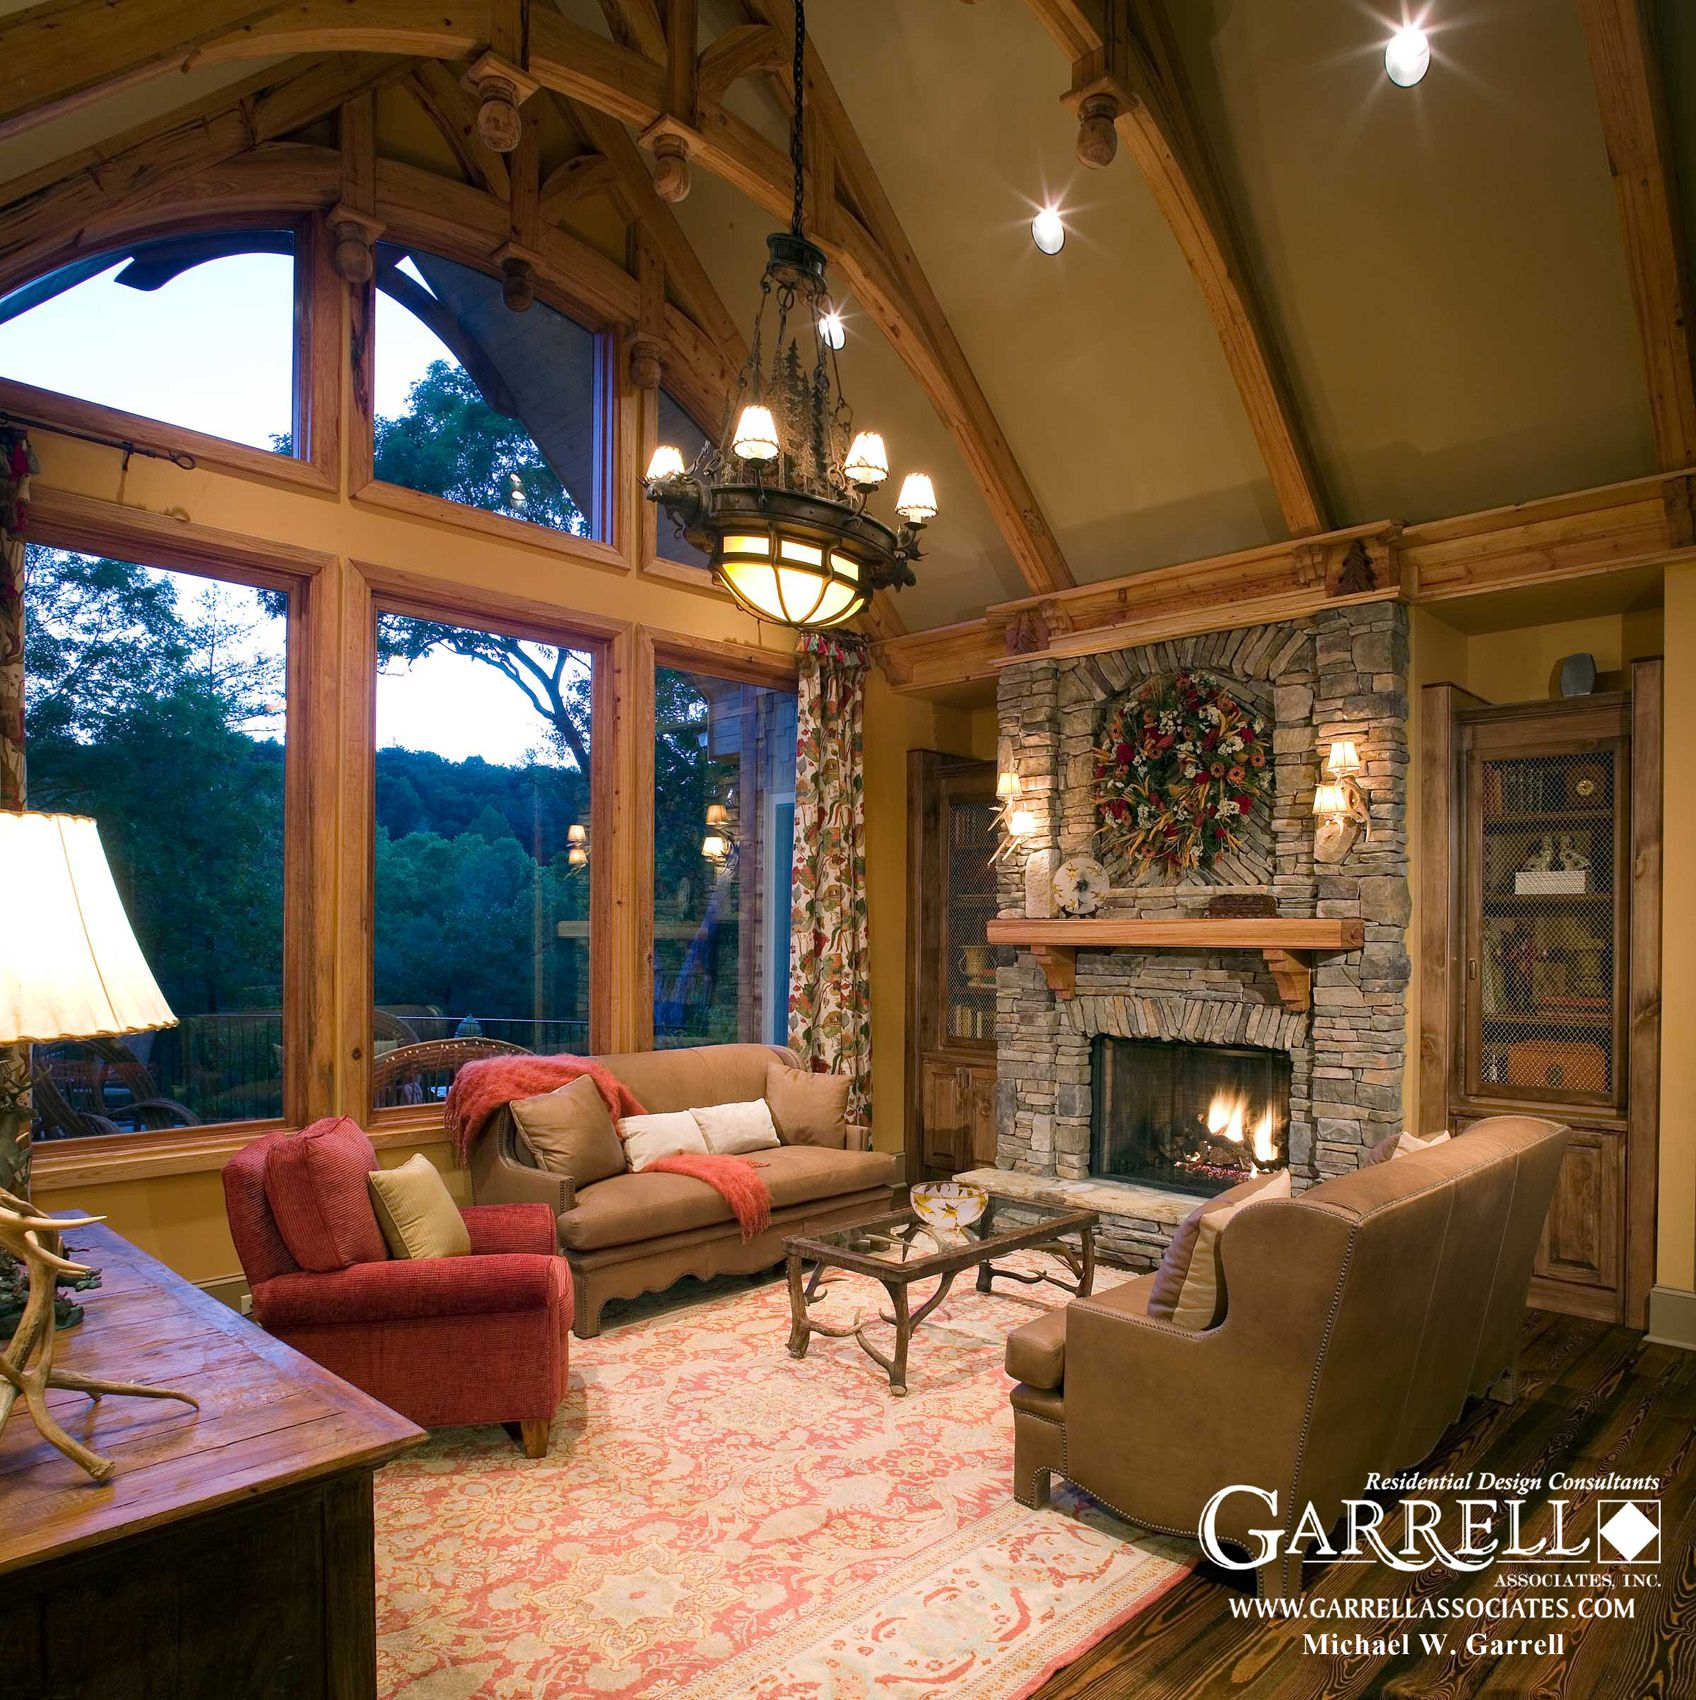 Home Design Ideas Floor Plans: Garrell Associates, Inc. Nantahala Cottage House Plan